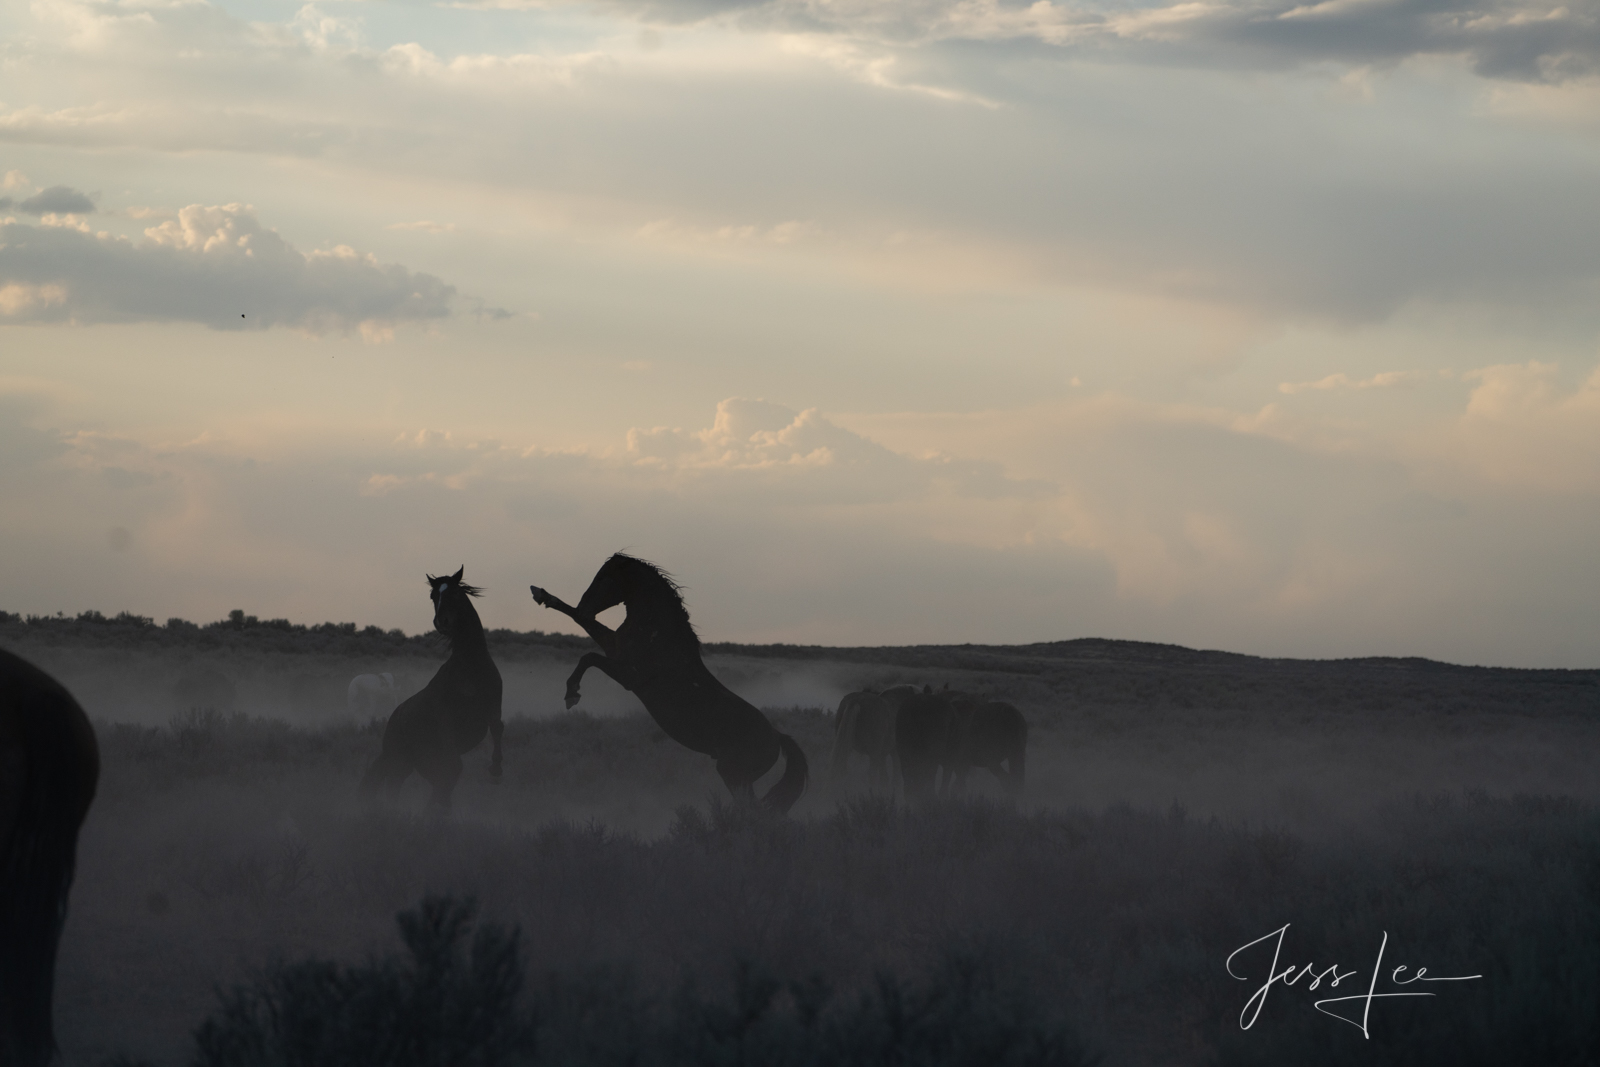 Fine Art Print of Wild Horses at sunset. Limited Edition of 250 Luxurious Prints.  Choose the style, size, and medium for your...